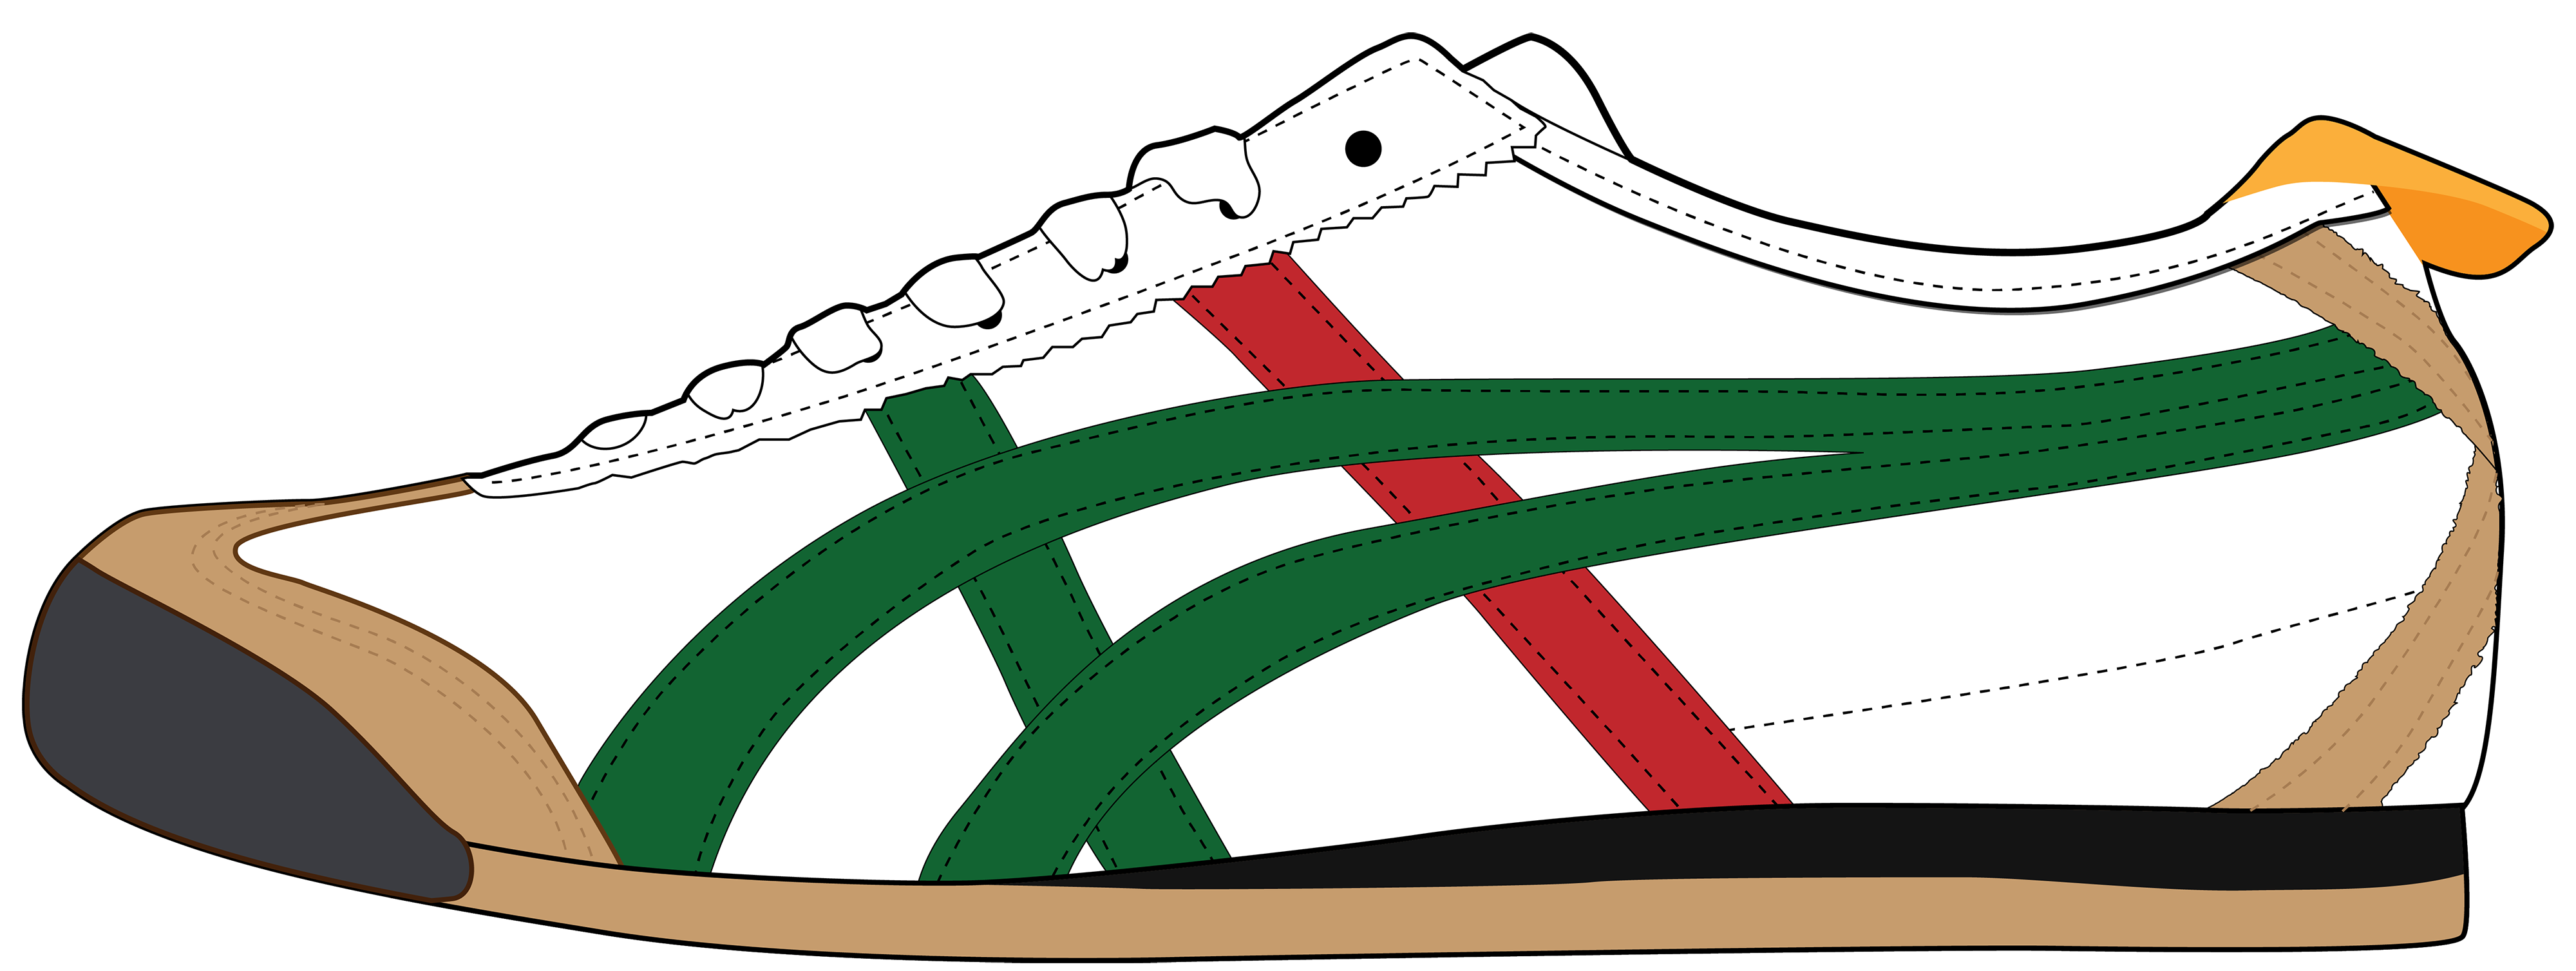 Shoe clipart. Men sport png best